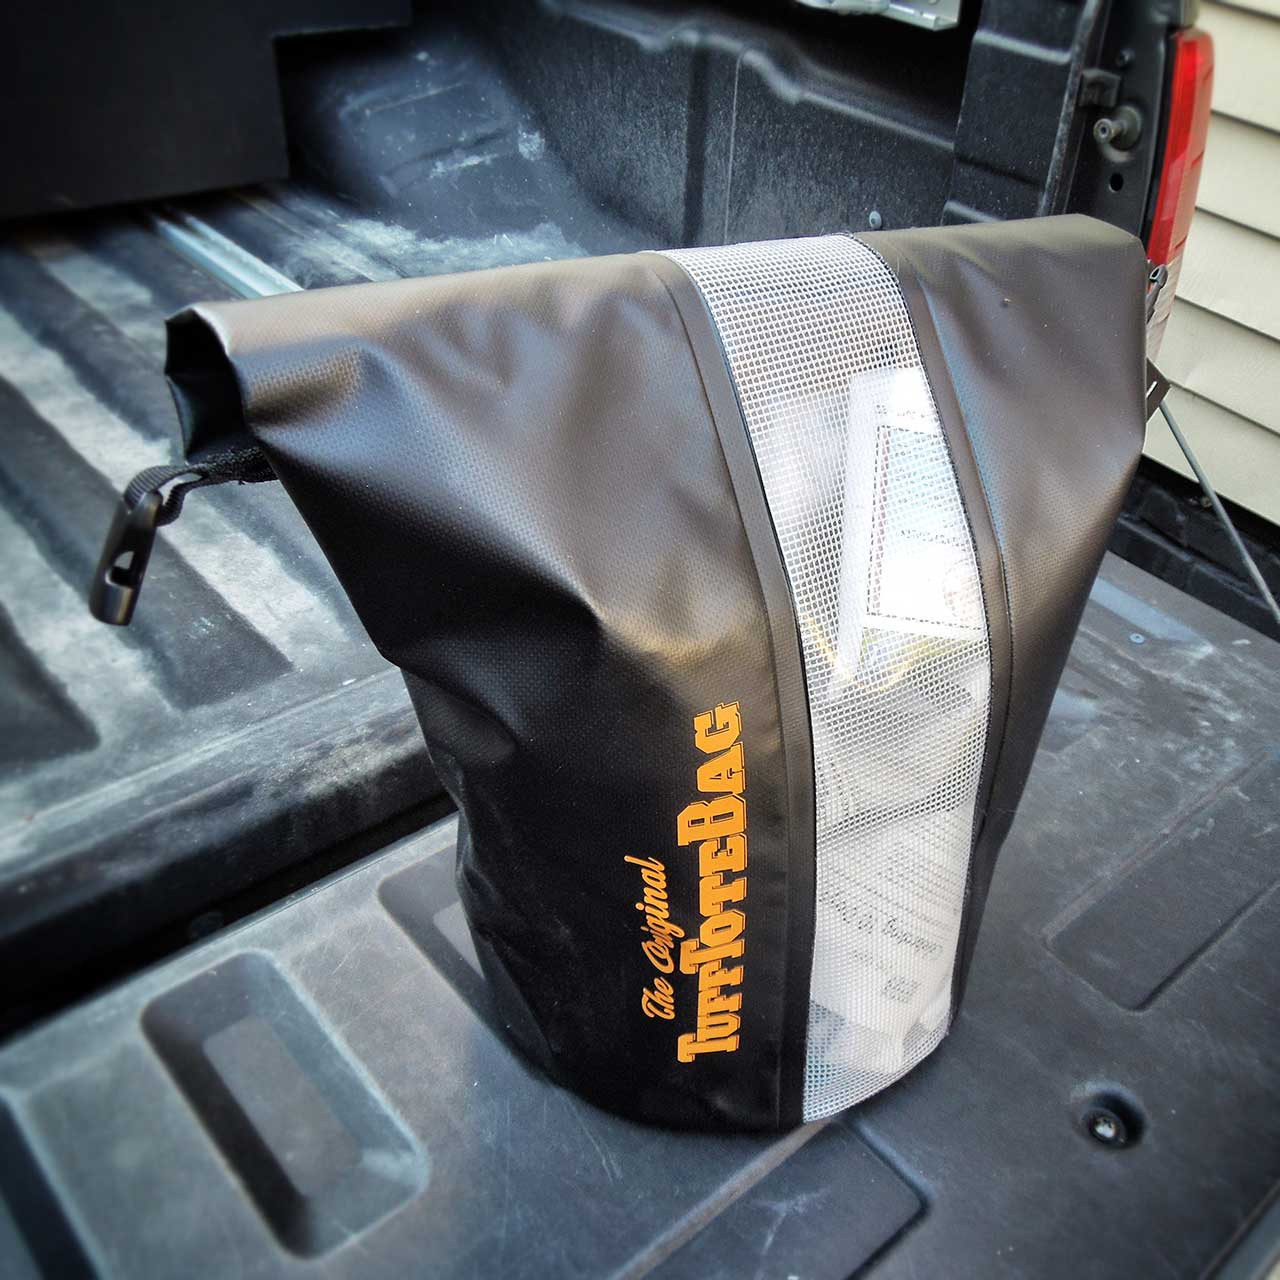 The unclipped handle that shows how the black class three waterproof Tuff Tote bag rolls open.